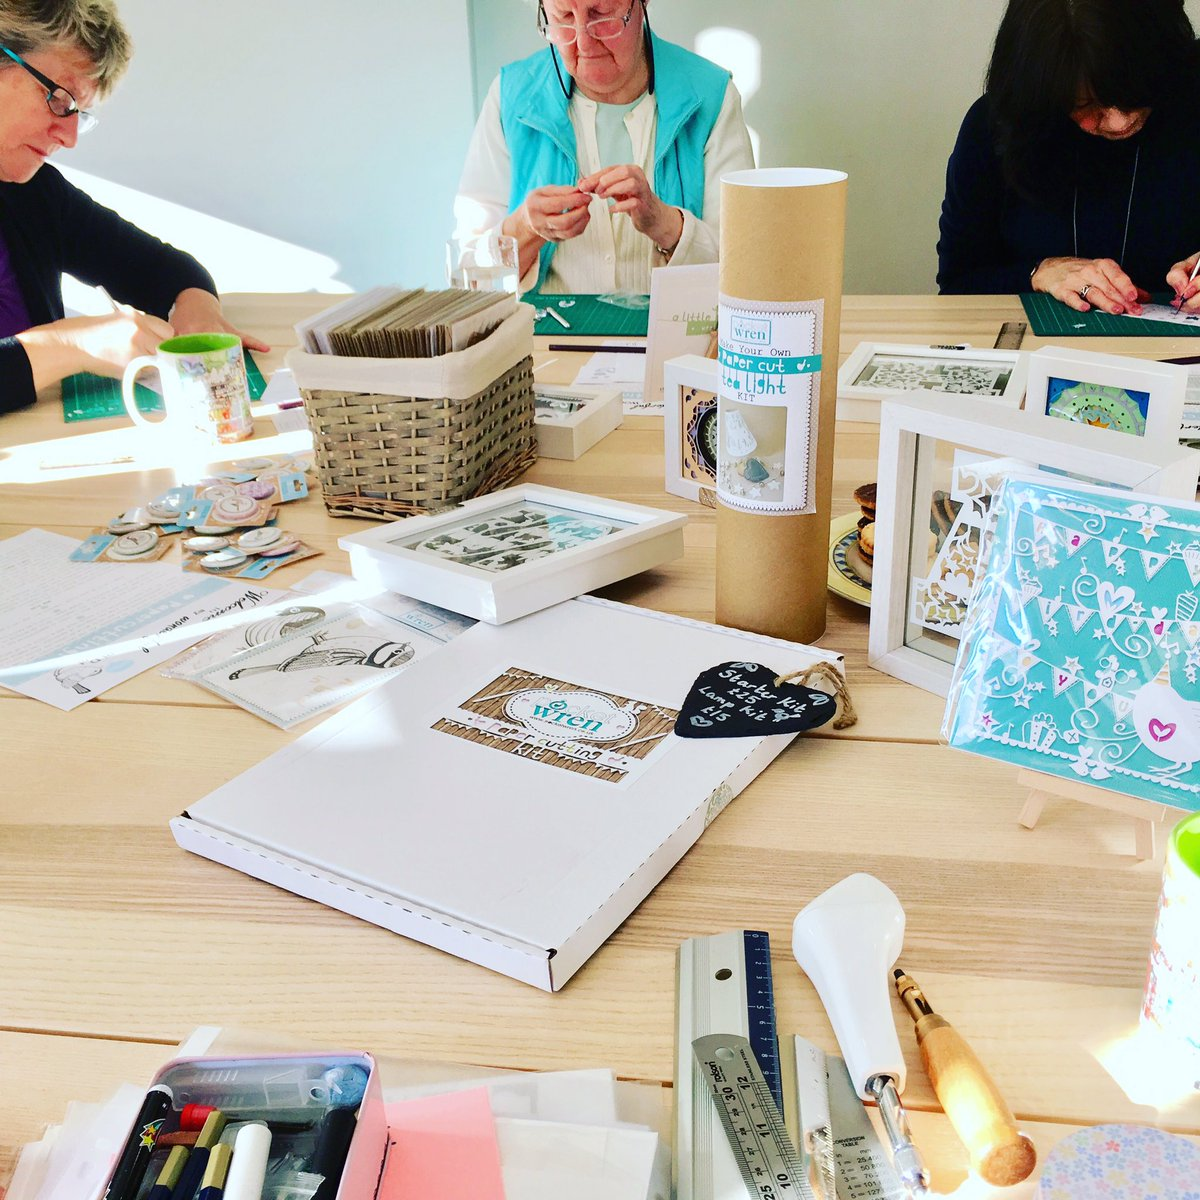 We've got a busy bunch of paper cutters in the workshop this morning, creating paper cut framed monograms with help from the wonderful Pocket Wren. More lovely paper cut classes coming up here on Friday 15 March and Friday 17 May (full details and booking on our Events page) ✨